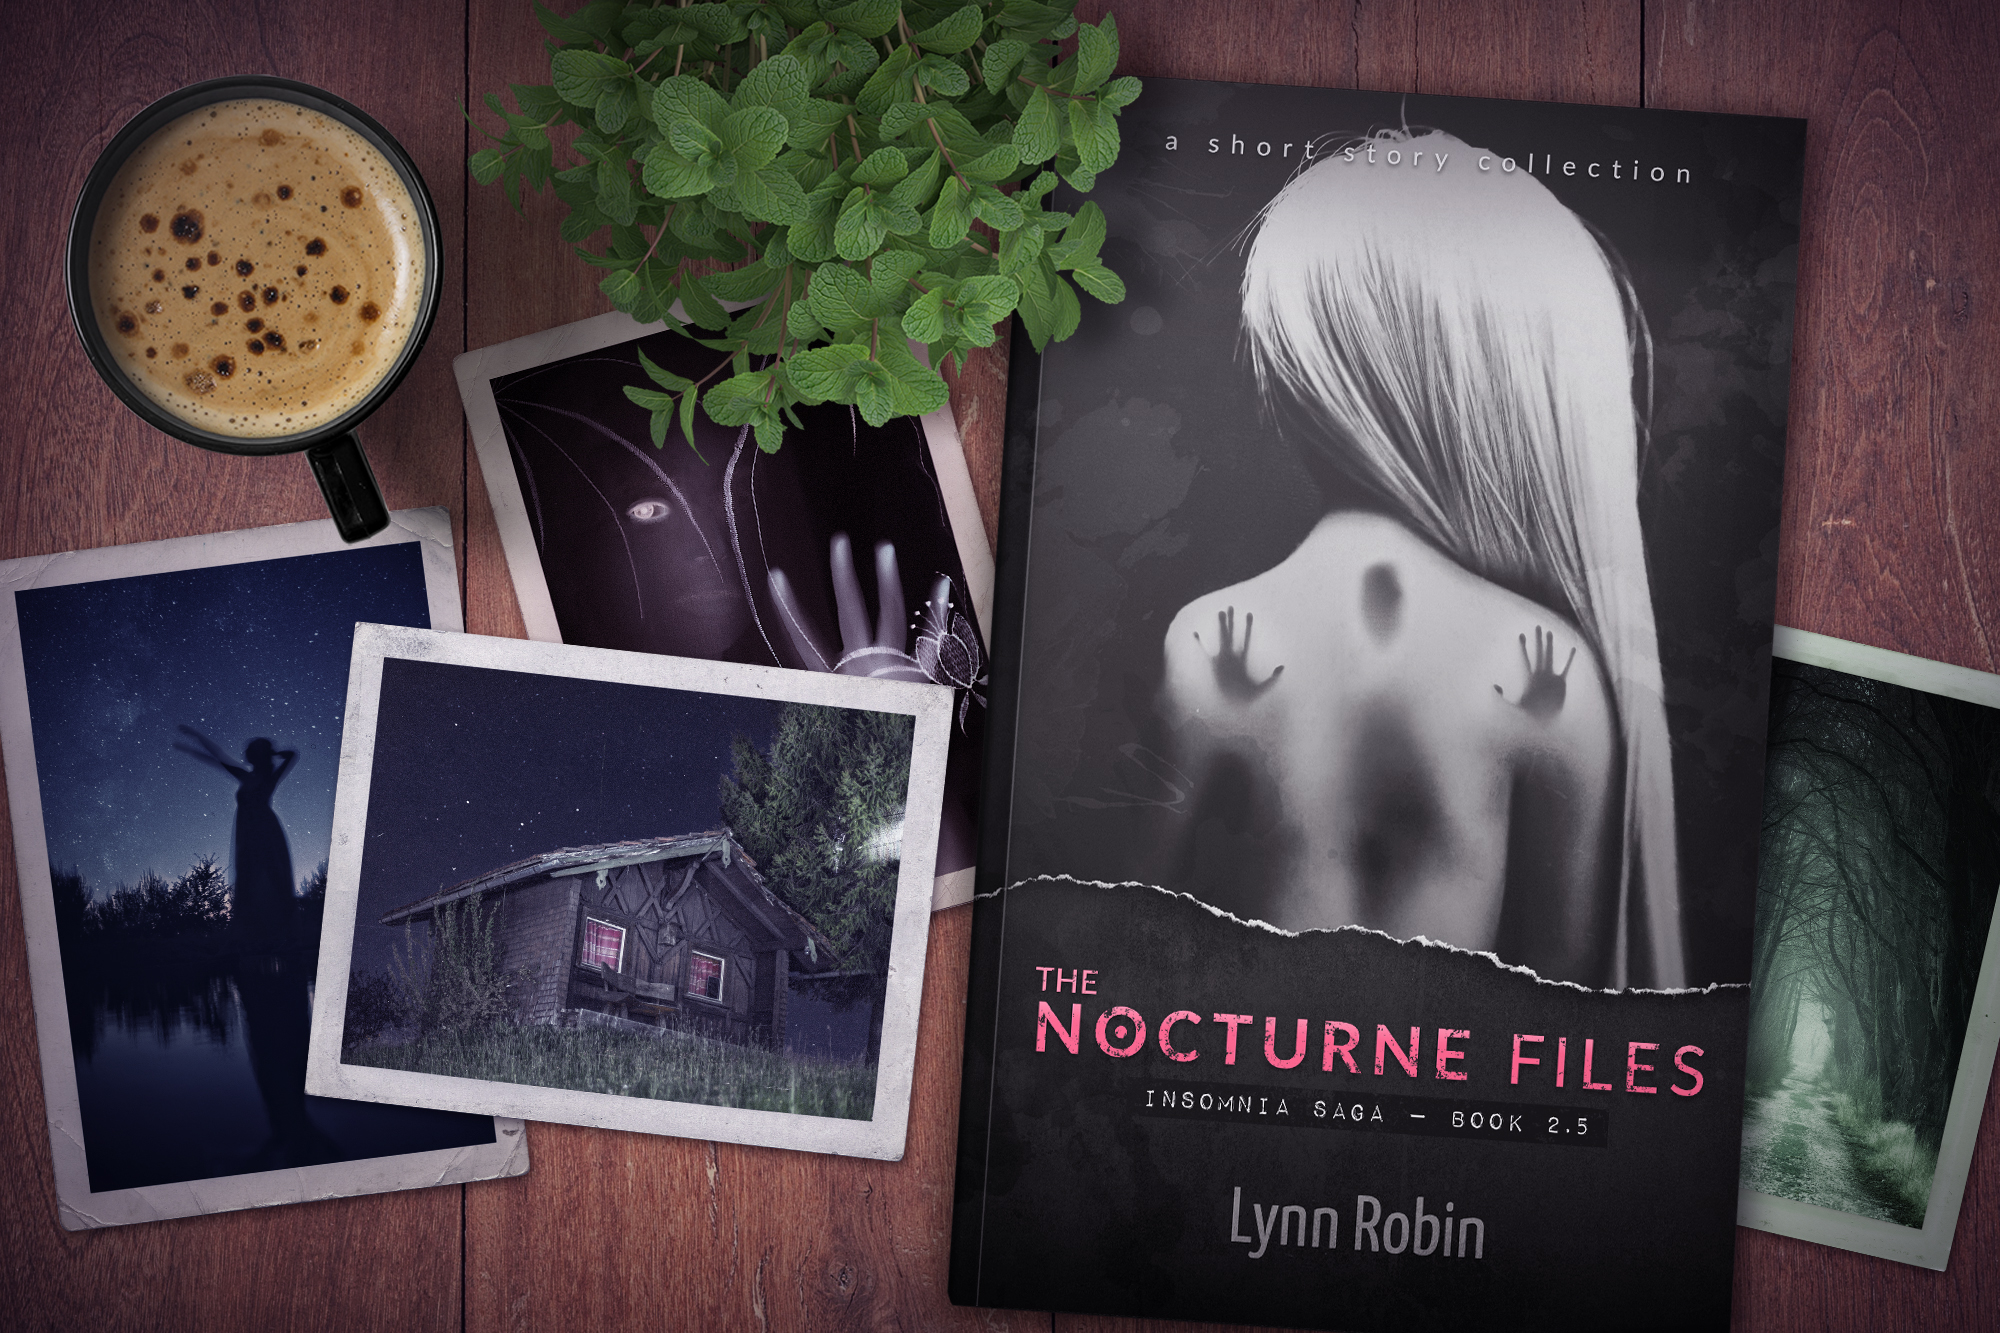 NEW RELEASE | OUT NOW: The Nocturne Files (Insomnia Saga 2.5)